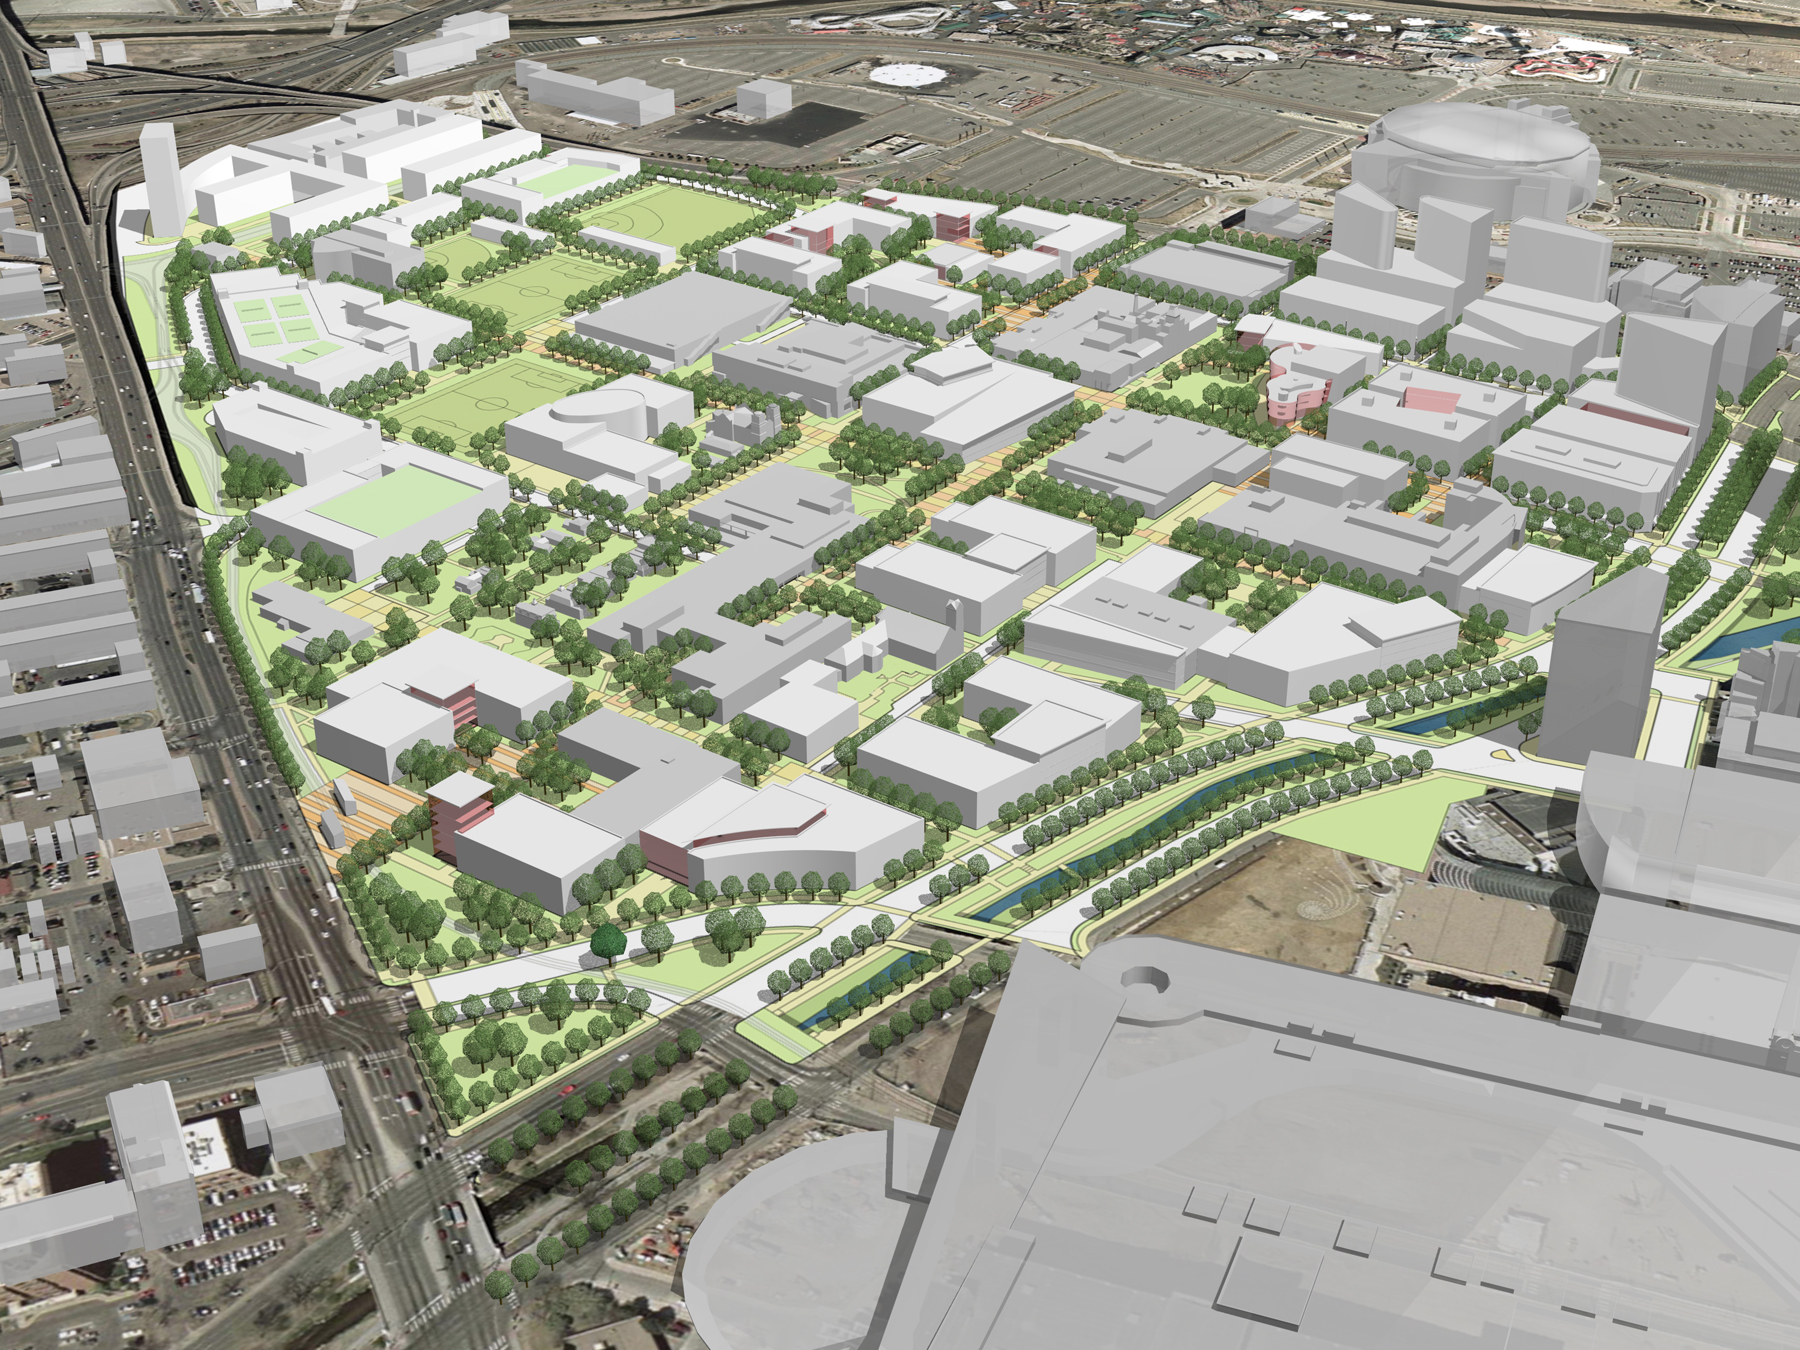 <f>Services</f><f>LandscapeArchitecture</f><f>Services</f><f>Planning</f><f>Markets</f><f>Education+Health</f><t>Auraria Higher Education Master Plan</t><m>Denver, CO</m>